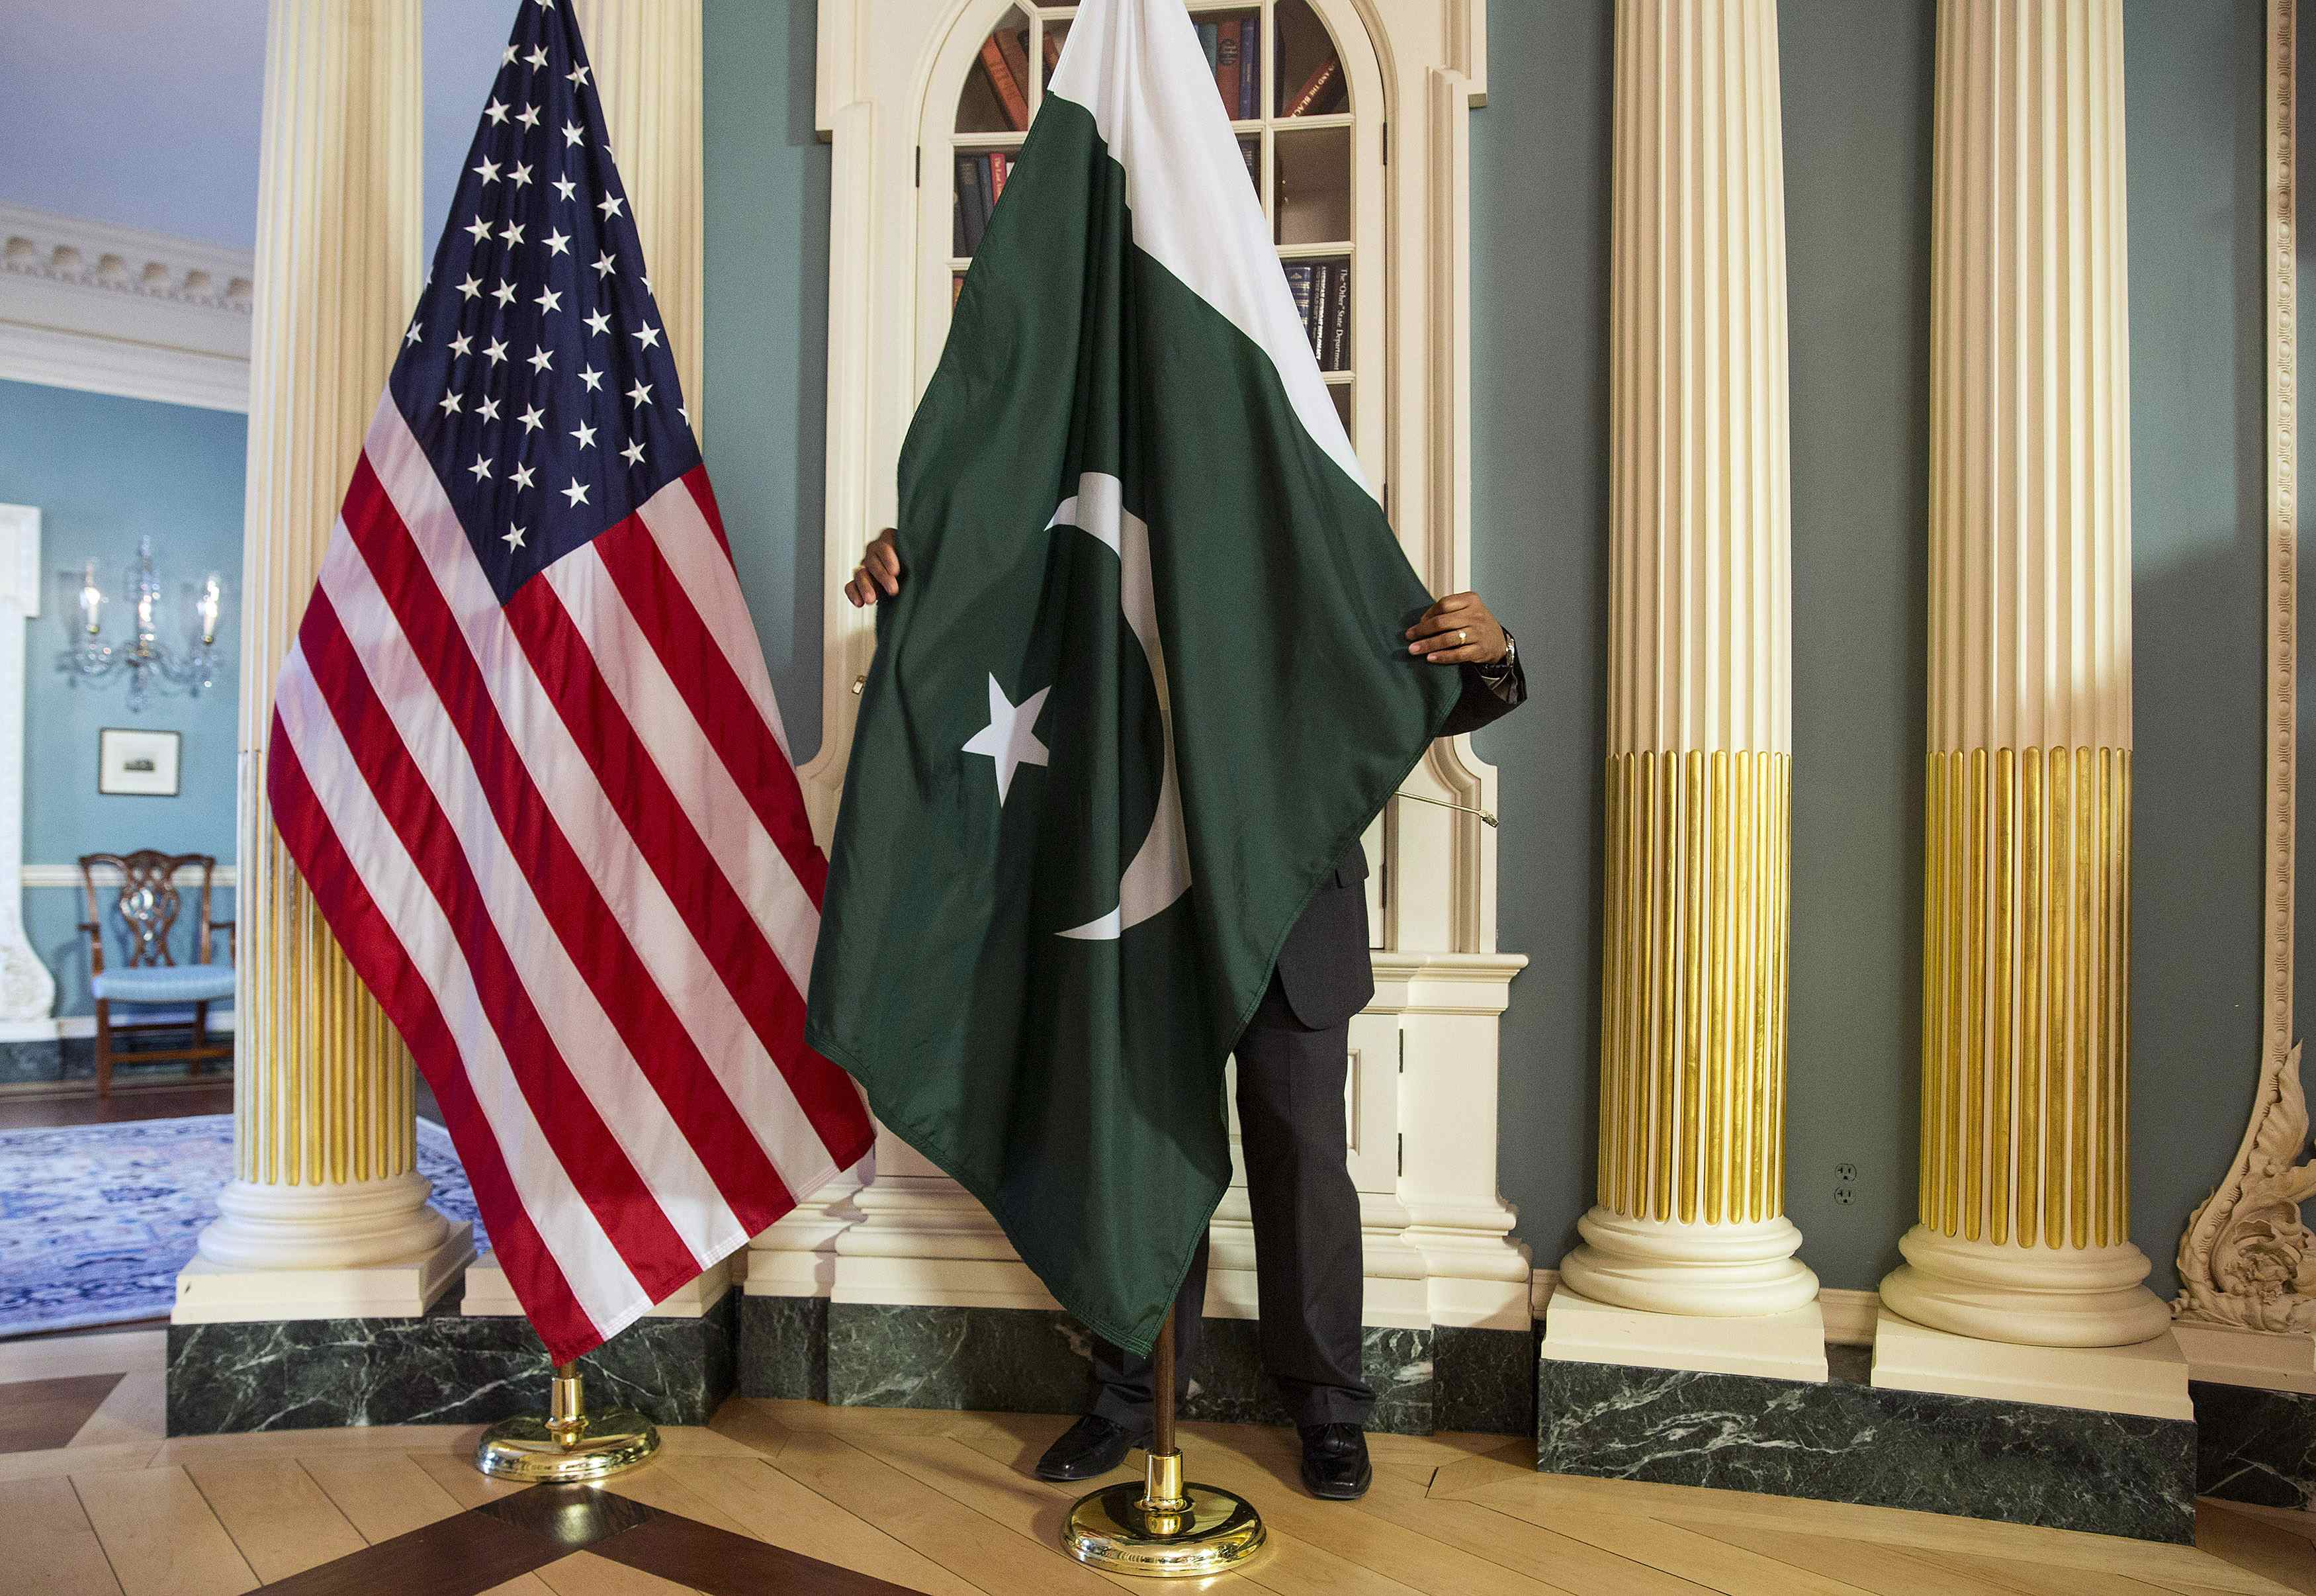 A State Department contractor adjust a Pakistan national flag before a meeting between U.S. Secretary of State John Kerry and Pakistan's Interior Minister Chaudhry Nisar Ali Khan on the sidelines of the White House Summit on Countering Violent Extremism at the State Department in Washington February 19, 2015. REUTERS/Joshua Roberts (UNITED STATES - Tags: POLITICS)